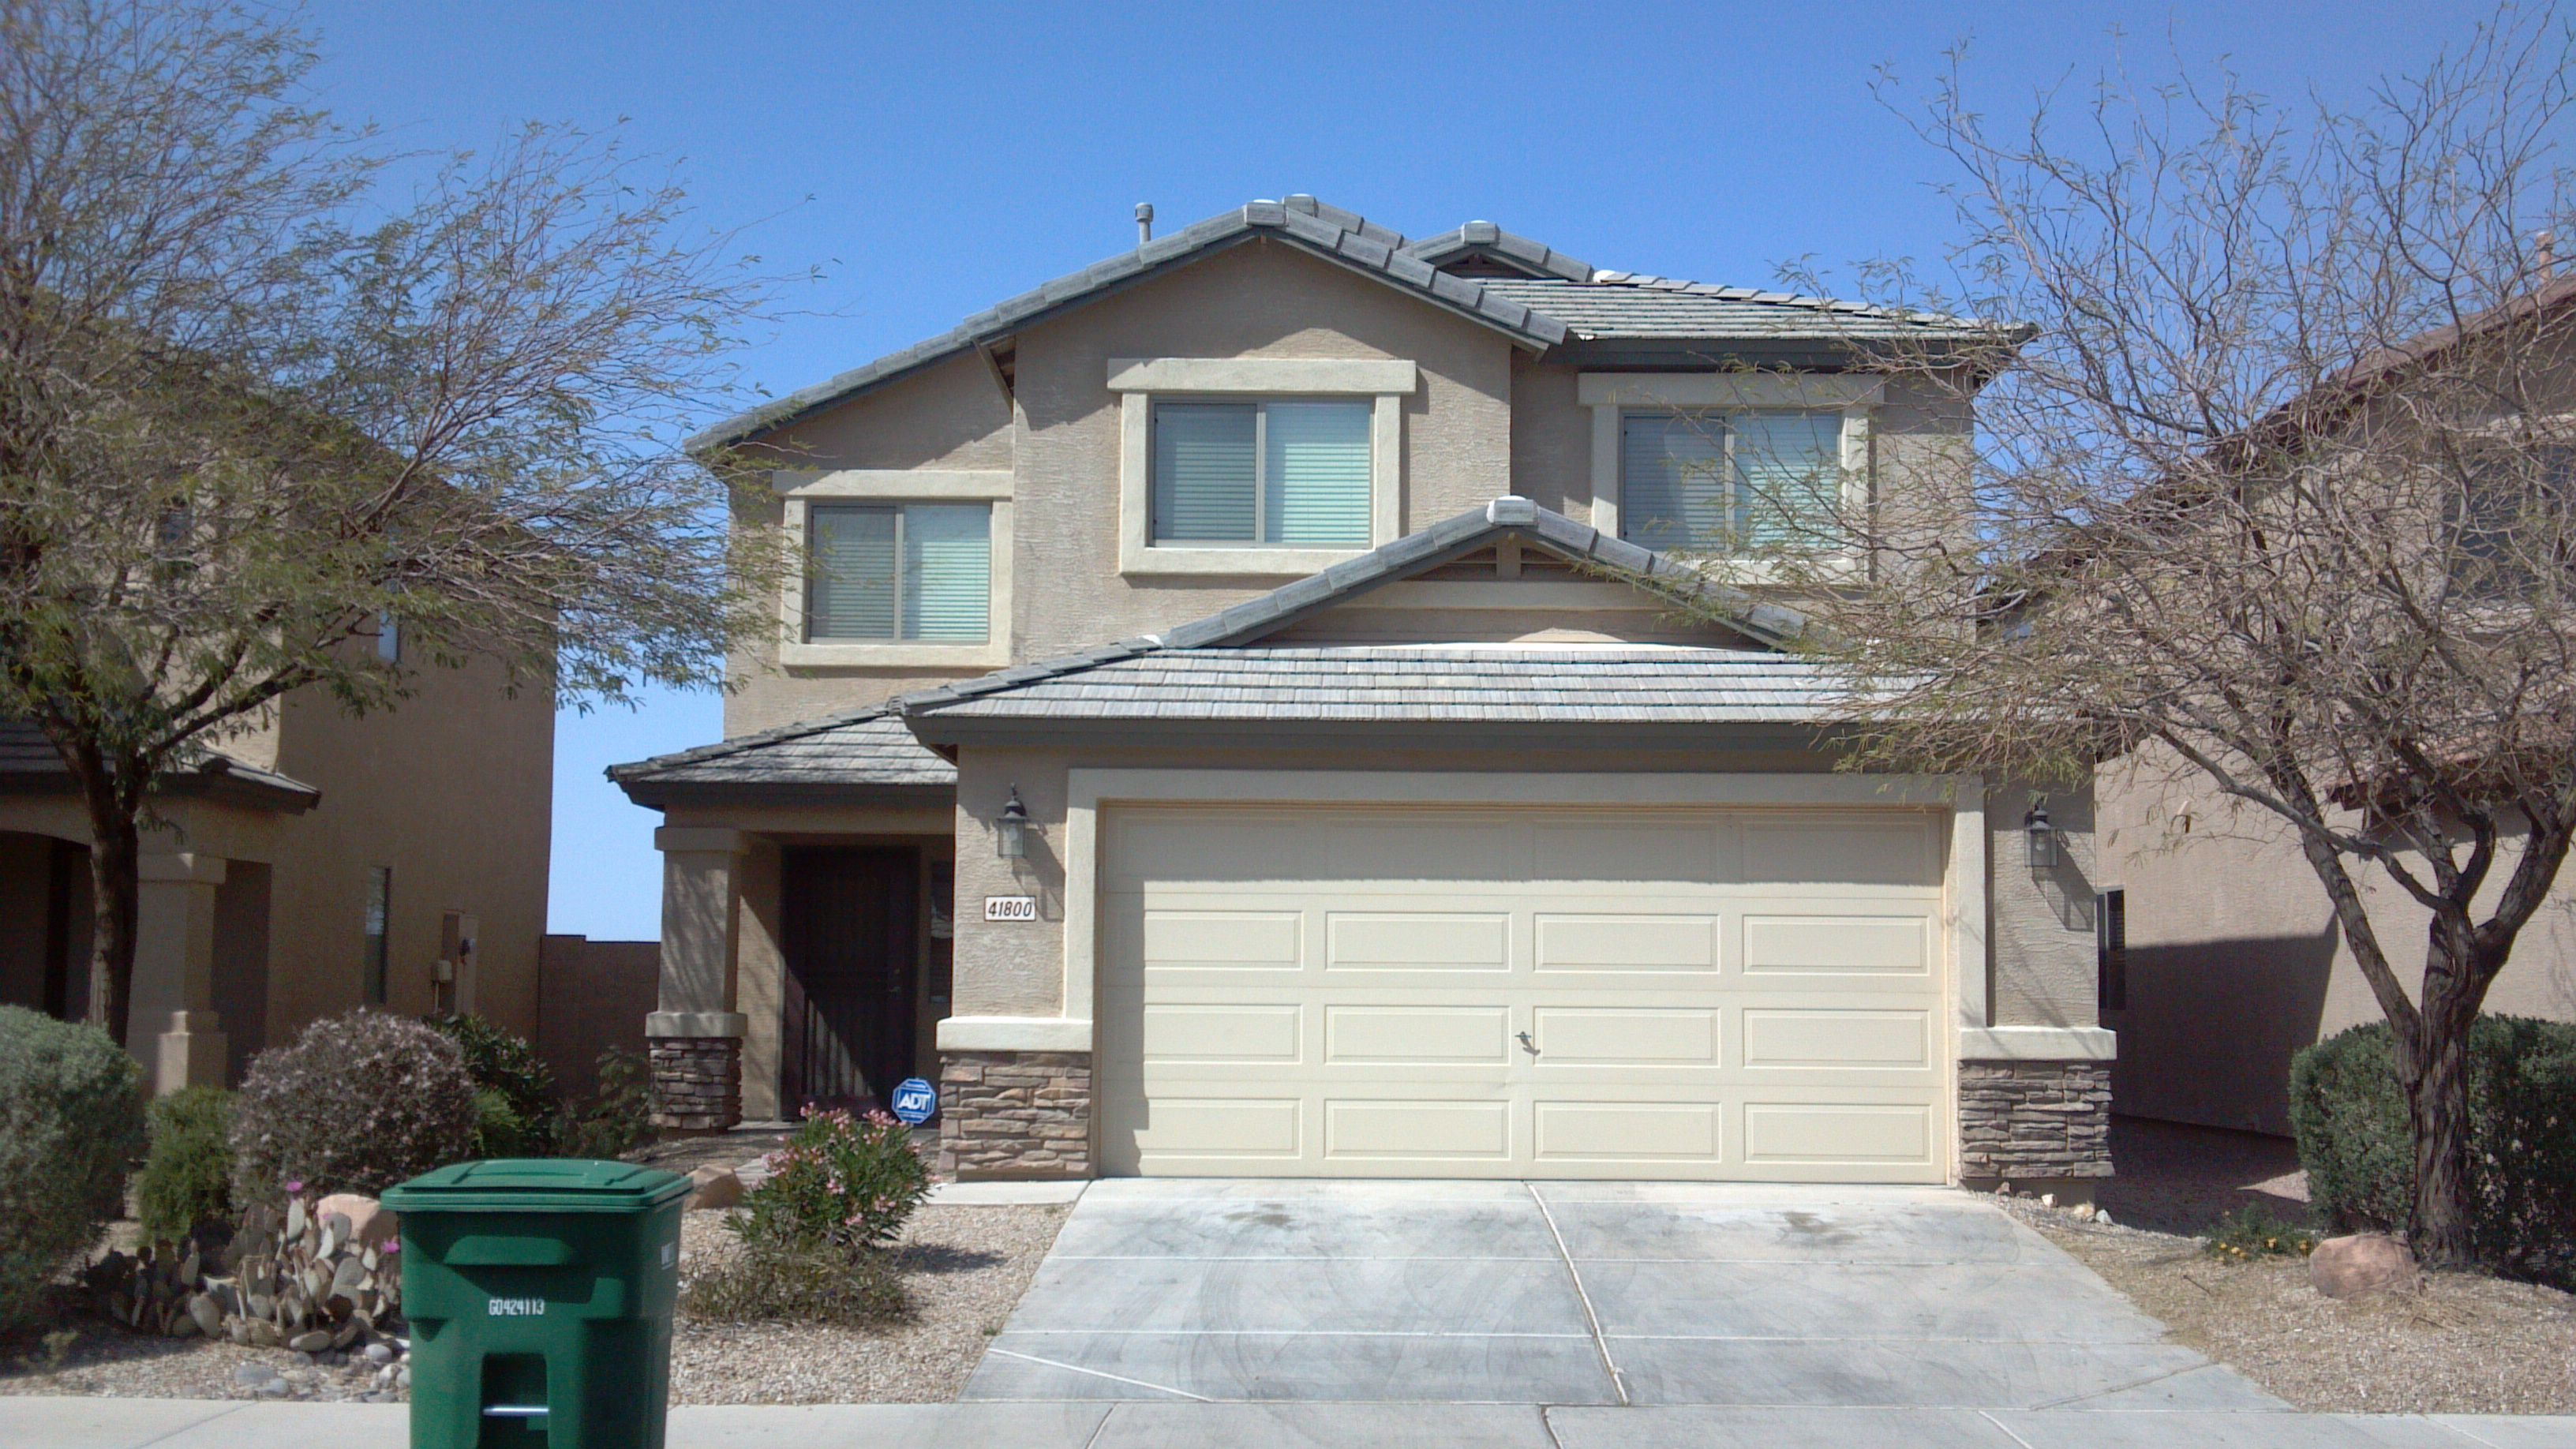 4 bedroom house for rent in maricopa available rental